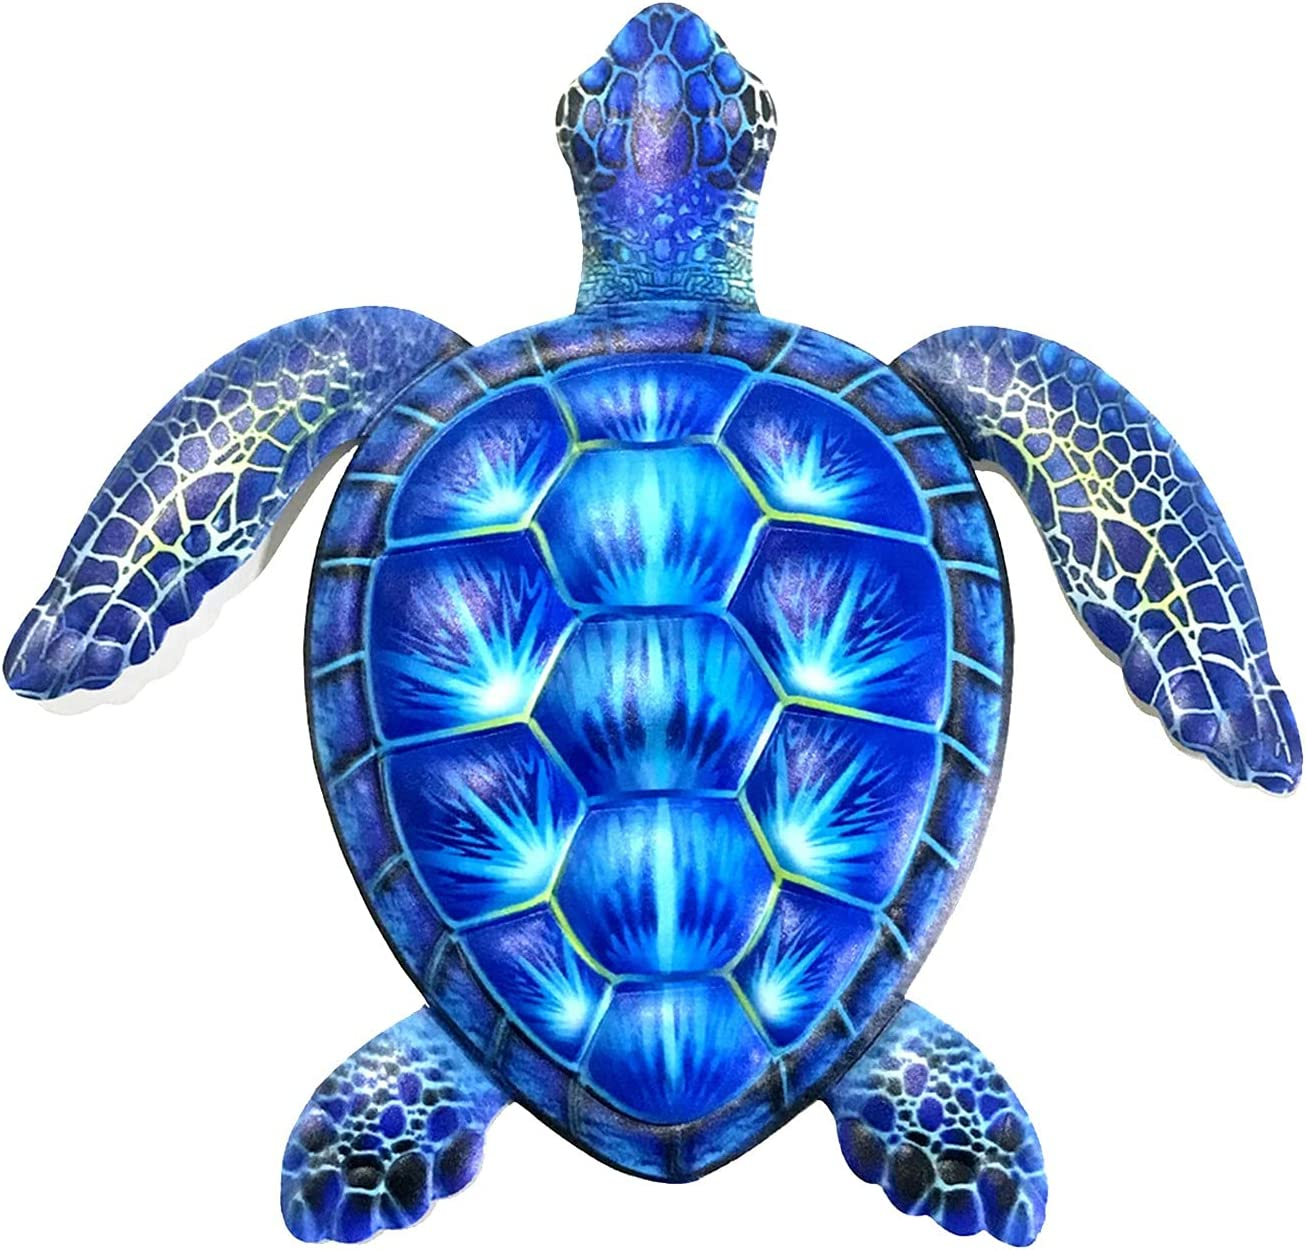 Metal Turtle Wall Decor Outdoor Indoor Sea Turtle Wall Art Hanging Decorations Garden Fence Metal Hanging Art for Porch,Patio,Yard,Home,Office,Garden Fences,Aquarium Ocean Wall Decoration (Blue)